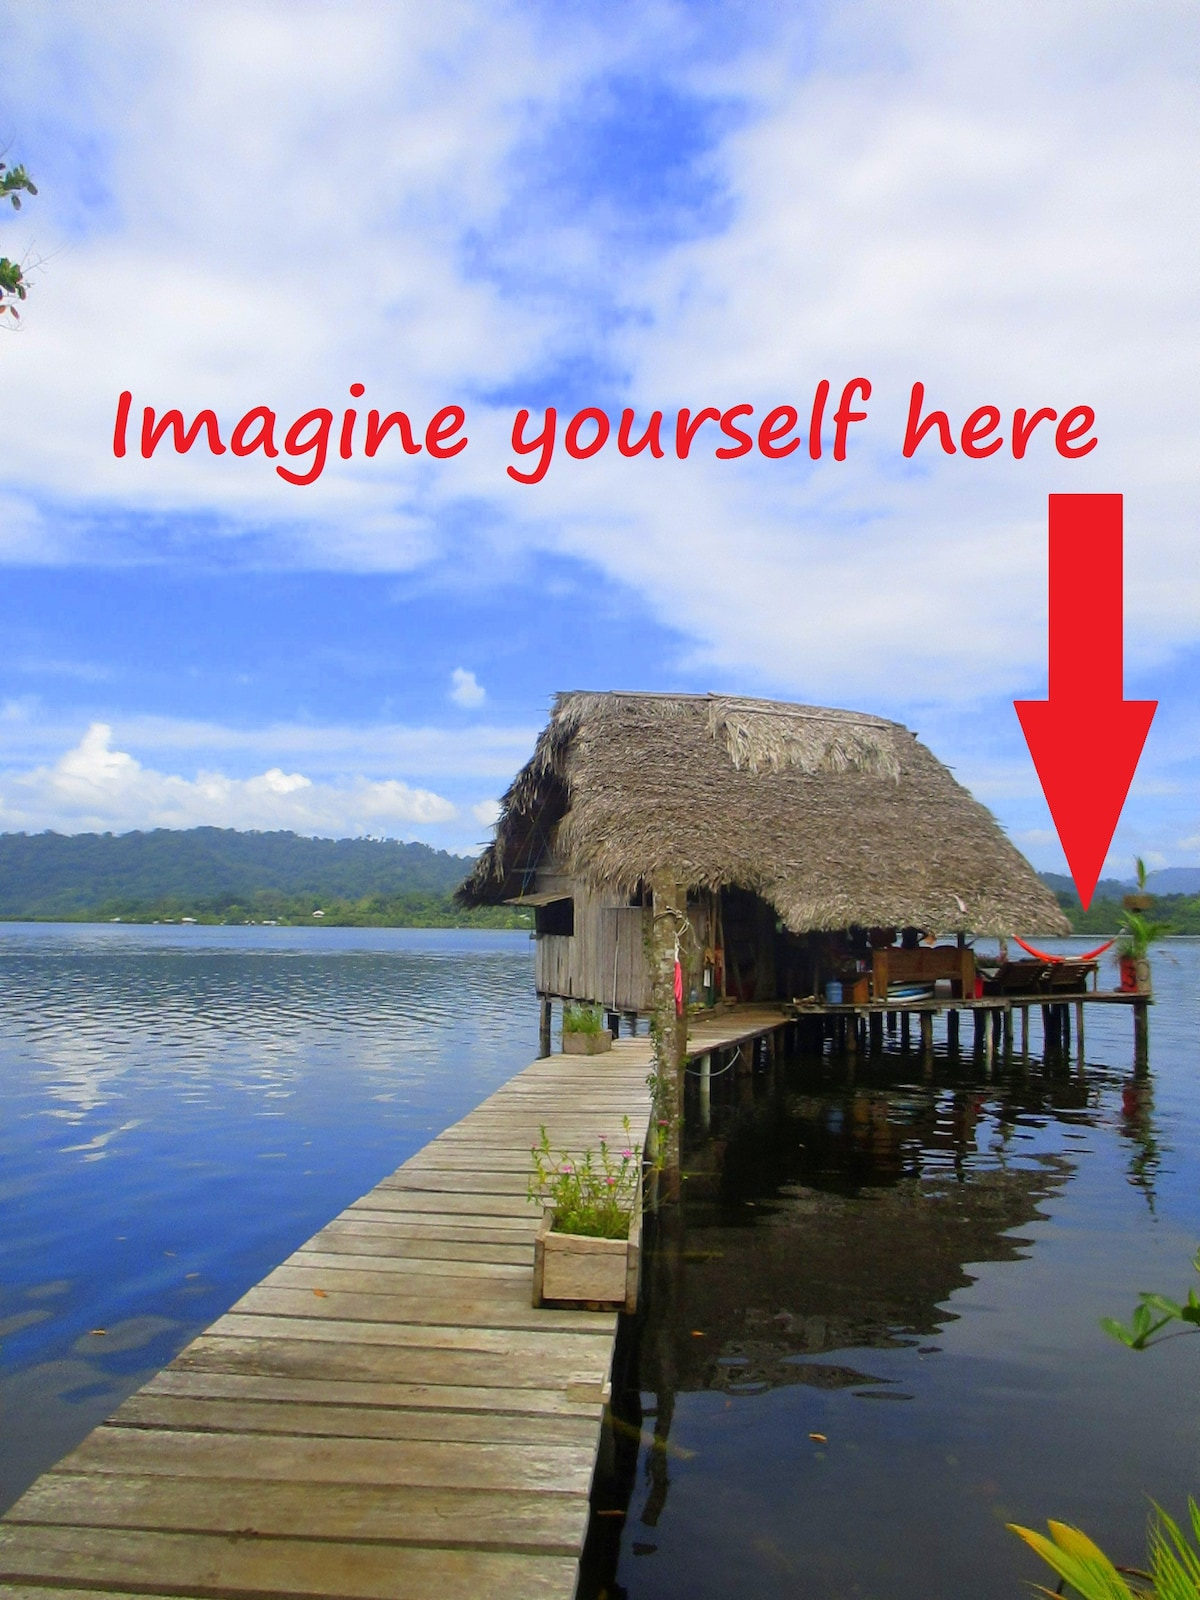 Imagine yourself here... can you?